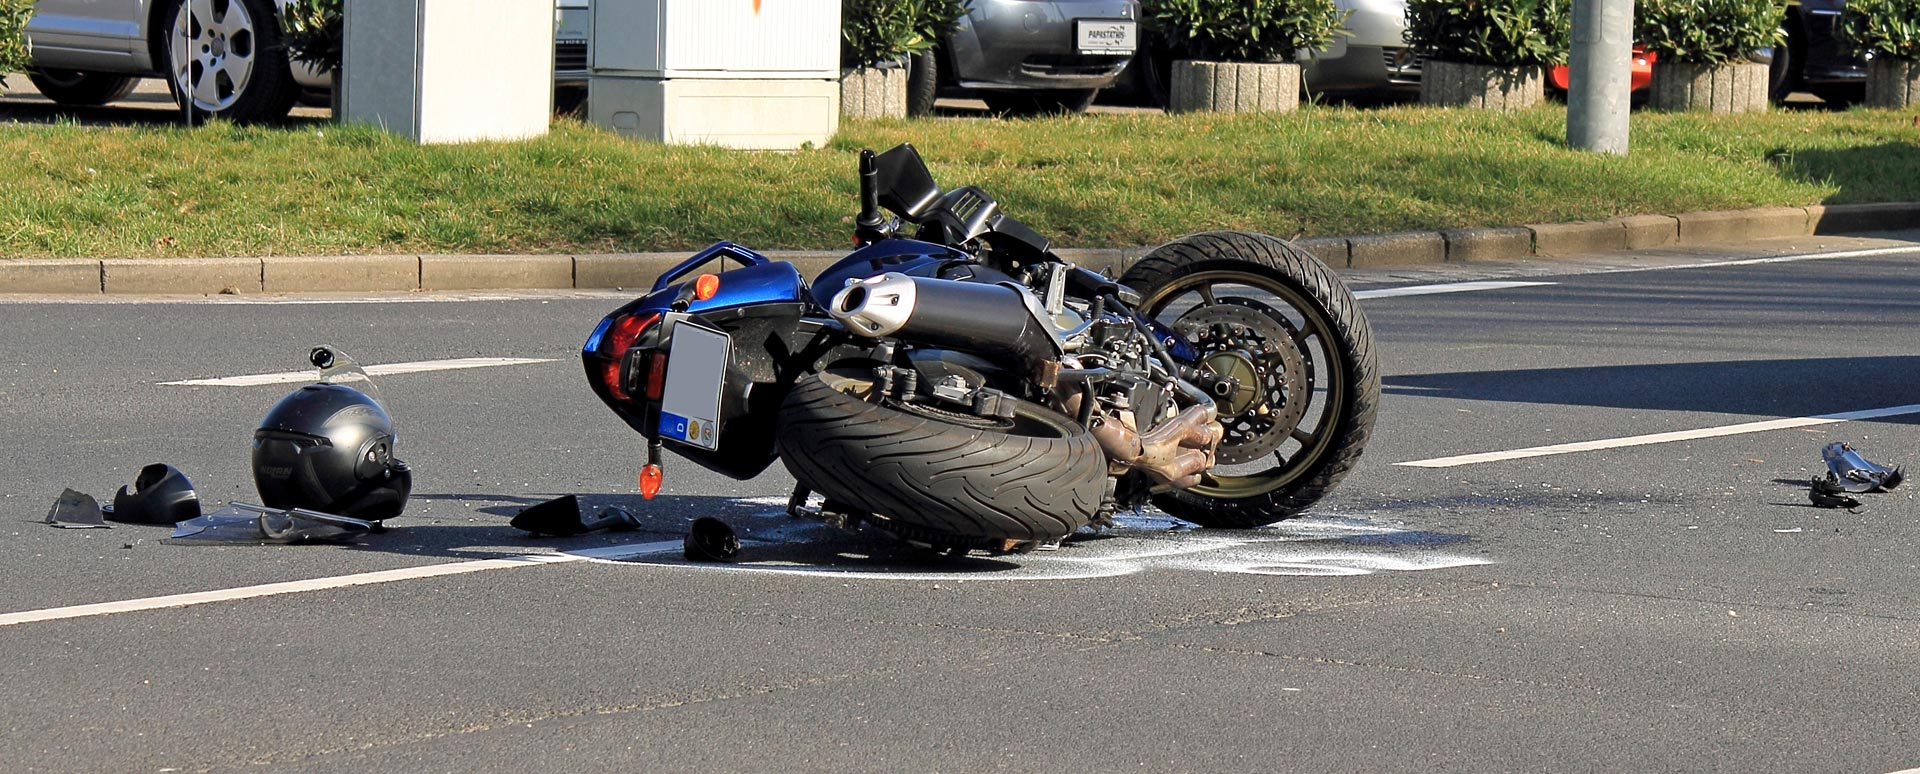 Los-Angeles-Motorcycle-Accident-Lawyer.jpg - Spartans F.C.